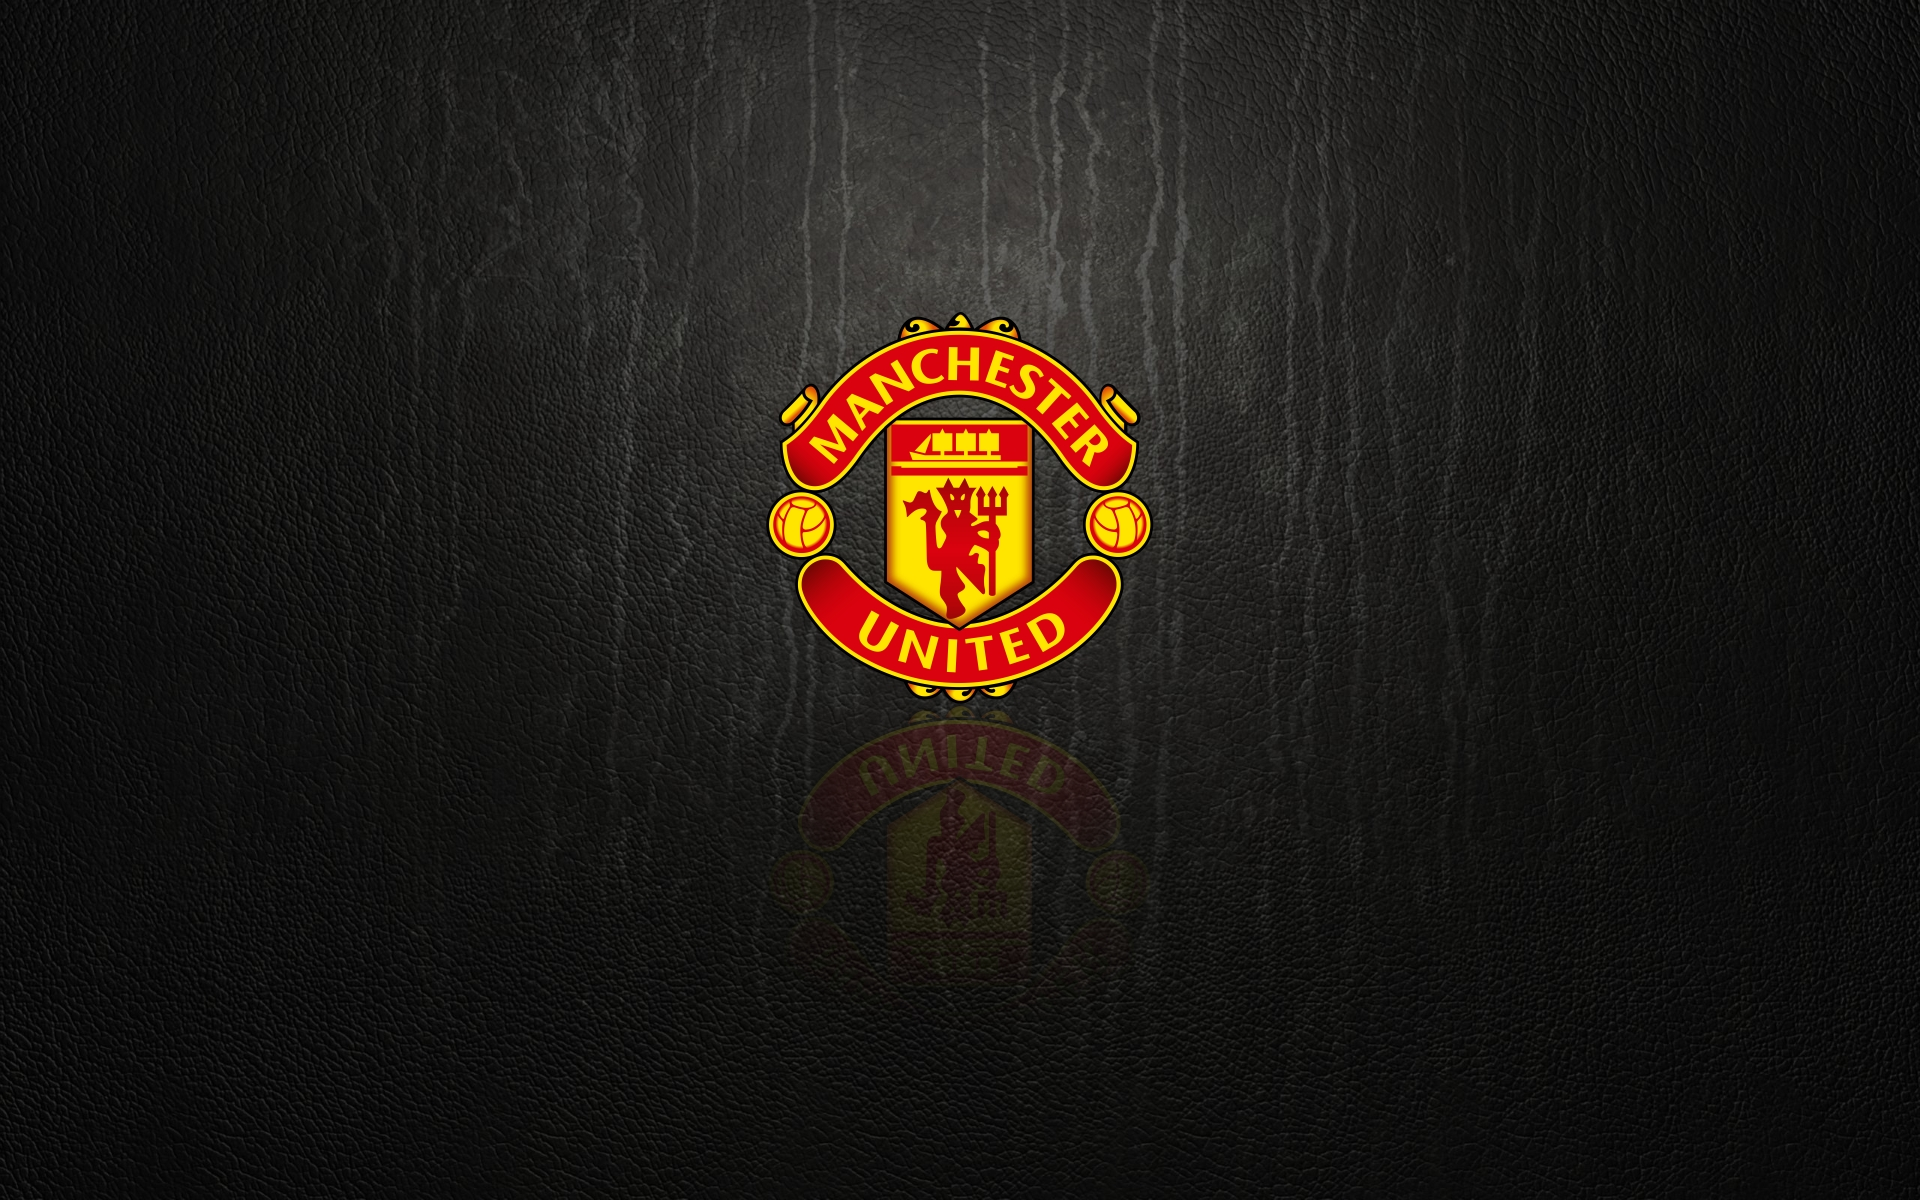 manchester united logos download manchester united logos download